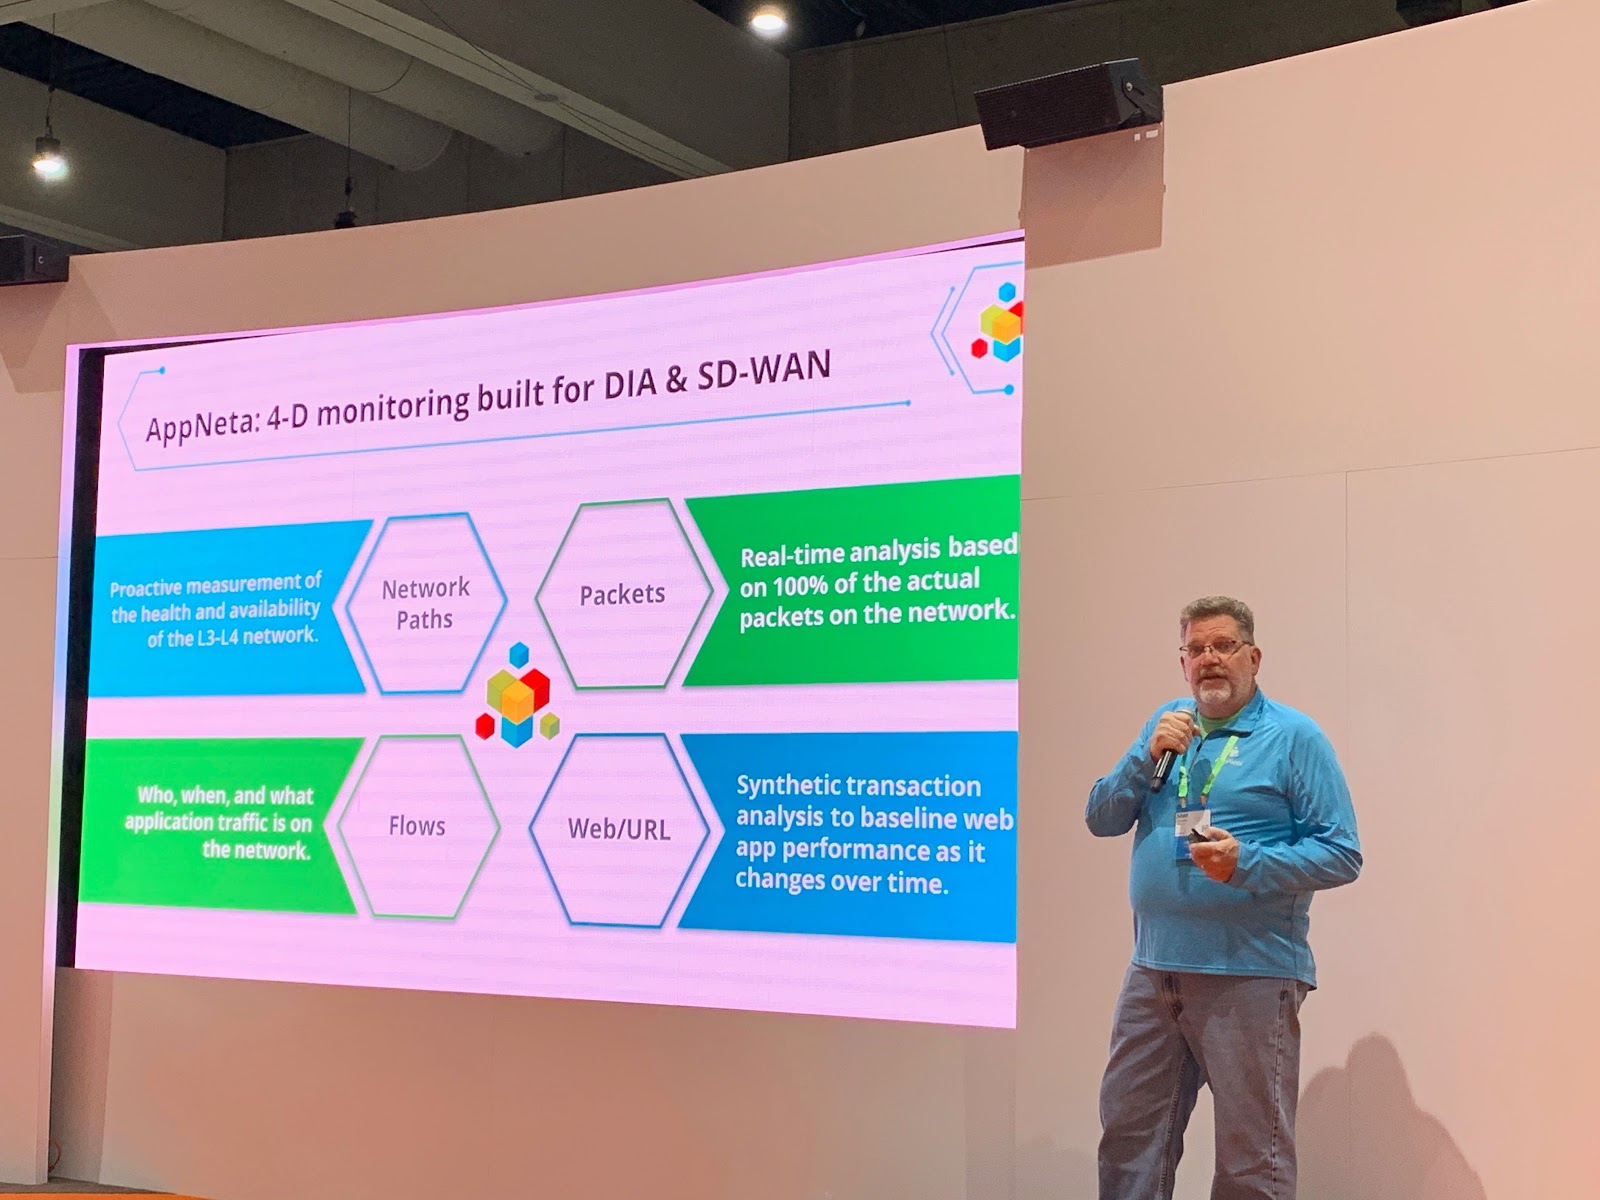 Scenes from Day 1 at Cisco Live 2019 #CLUS